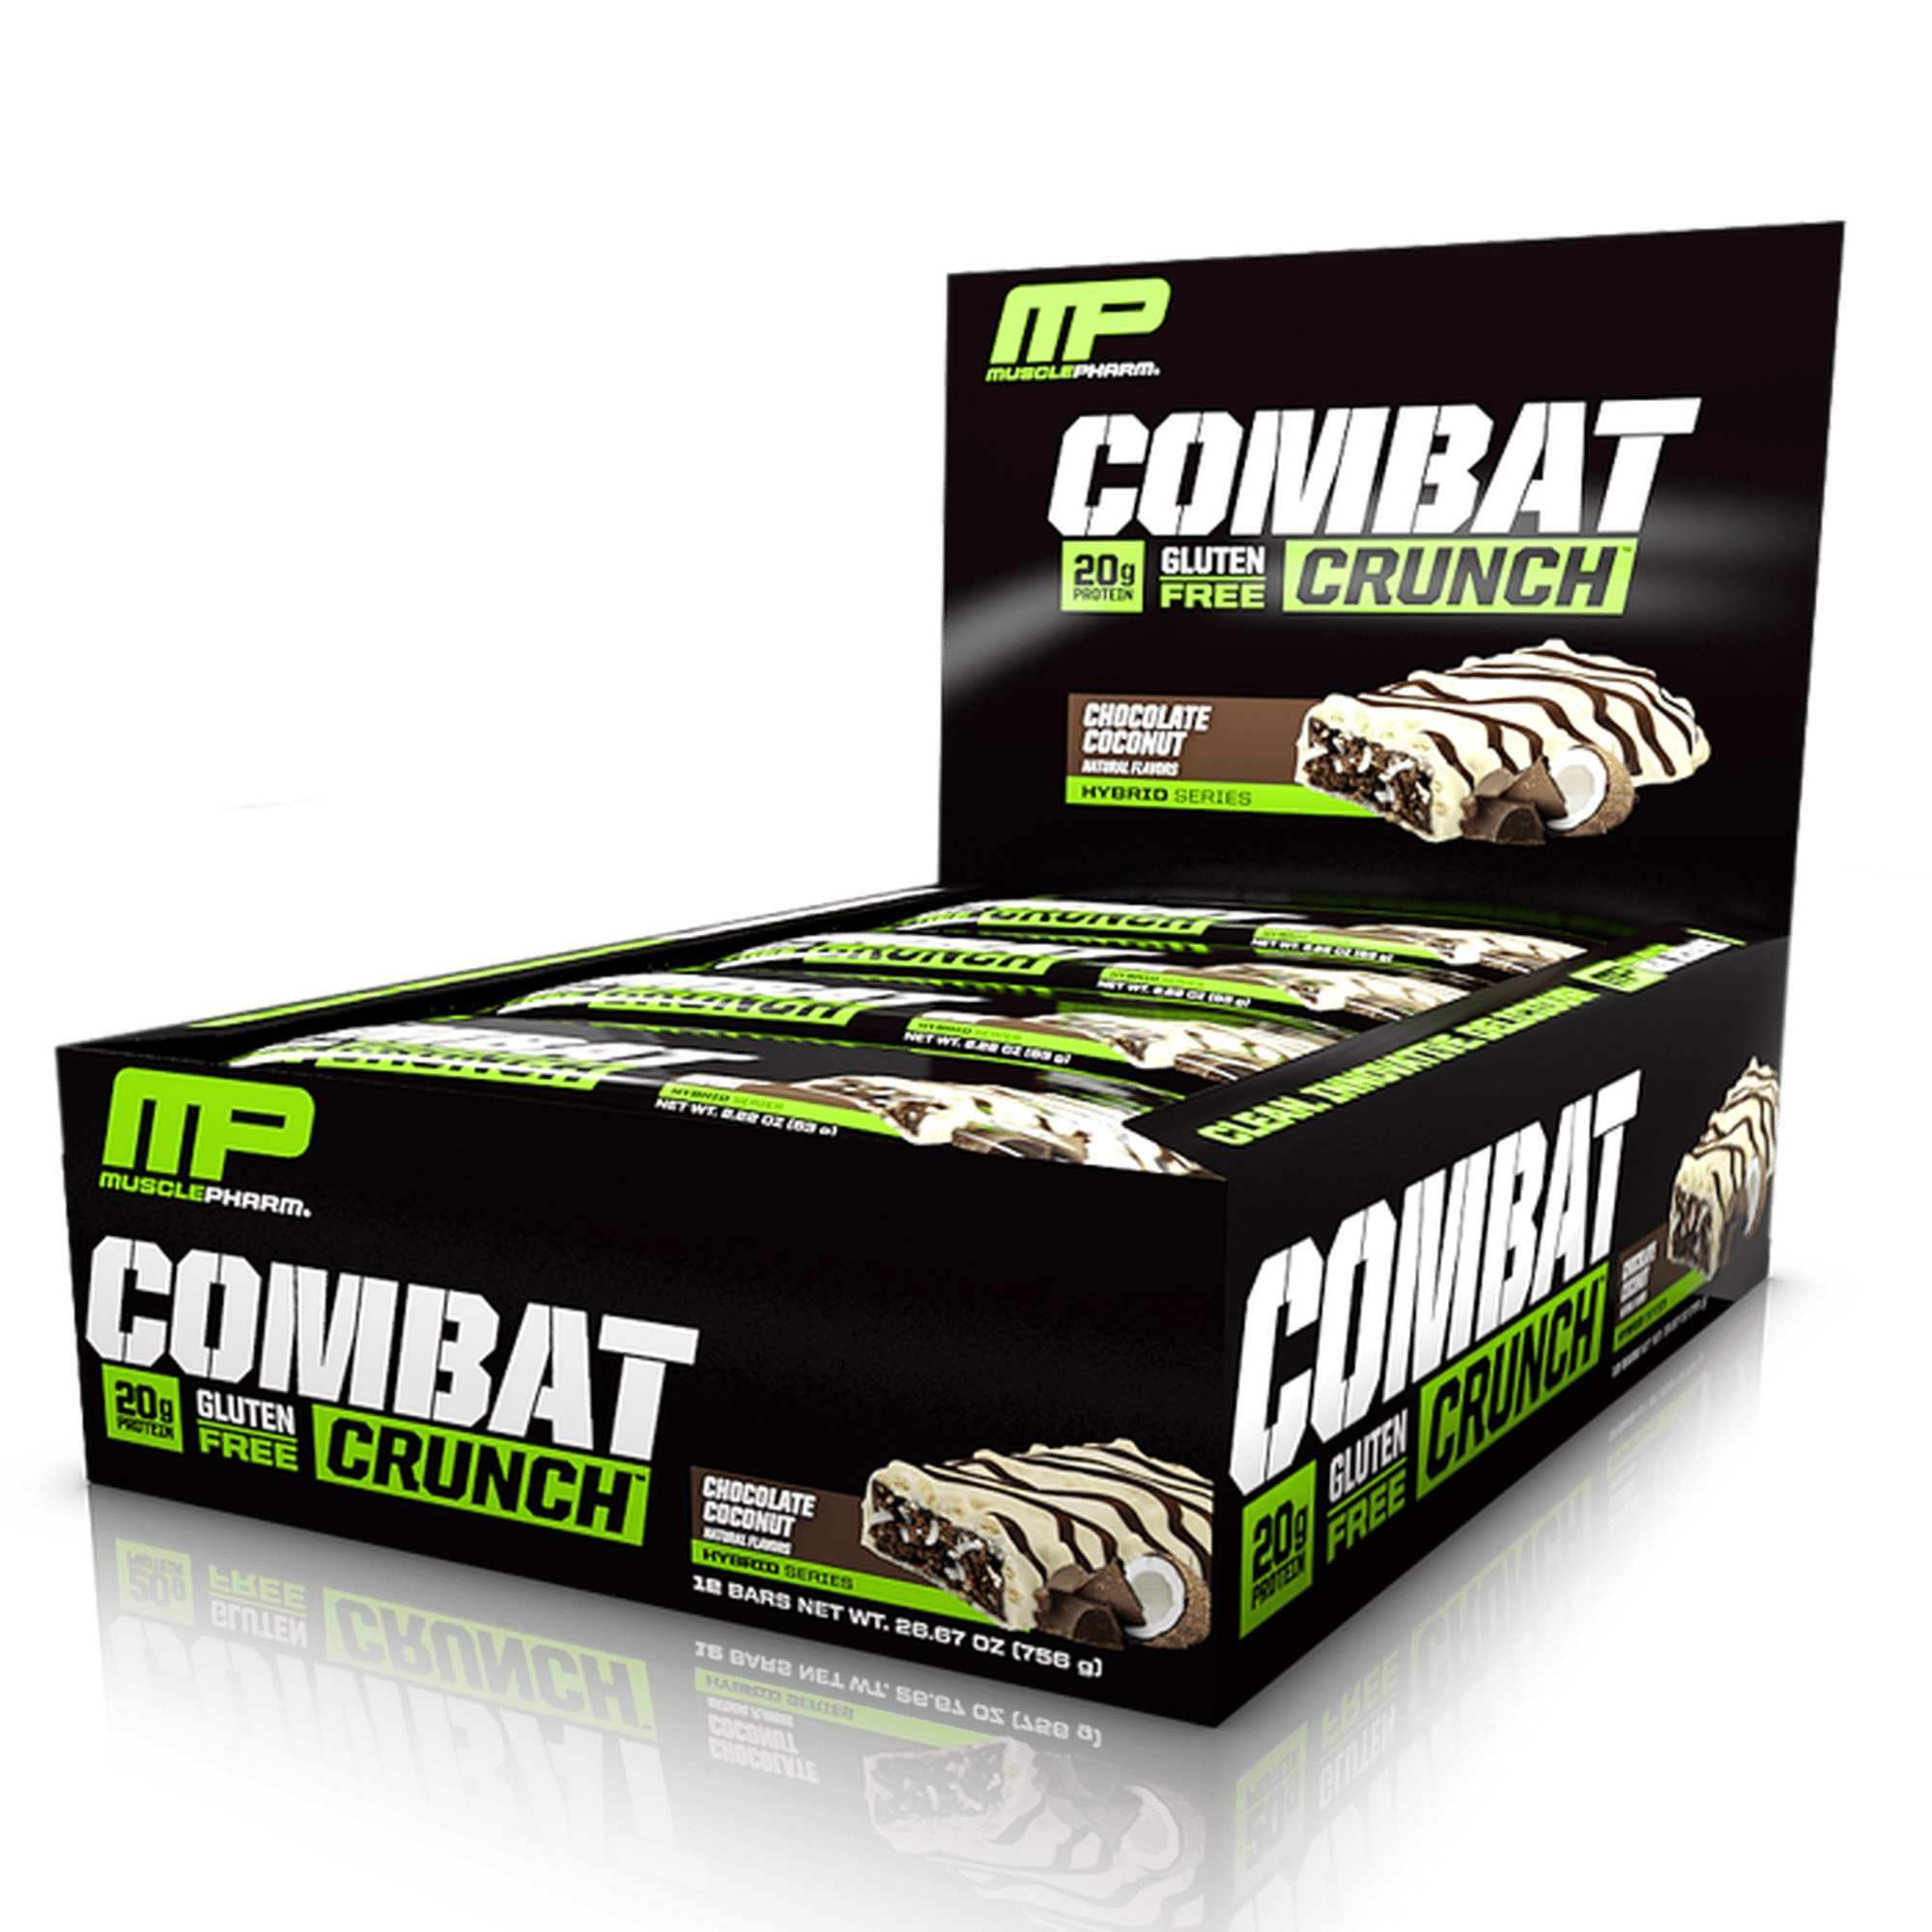 MusclePharm Combat Crunch Protein Bar, Multi-Layered Baked Bar, Gluten-Free Bars, 20 g Protein, Low-Sugar, Low-Carb, Gluten-Free, Chocolate Coconut Bars, 12 Count by Muscle Pharm